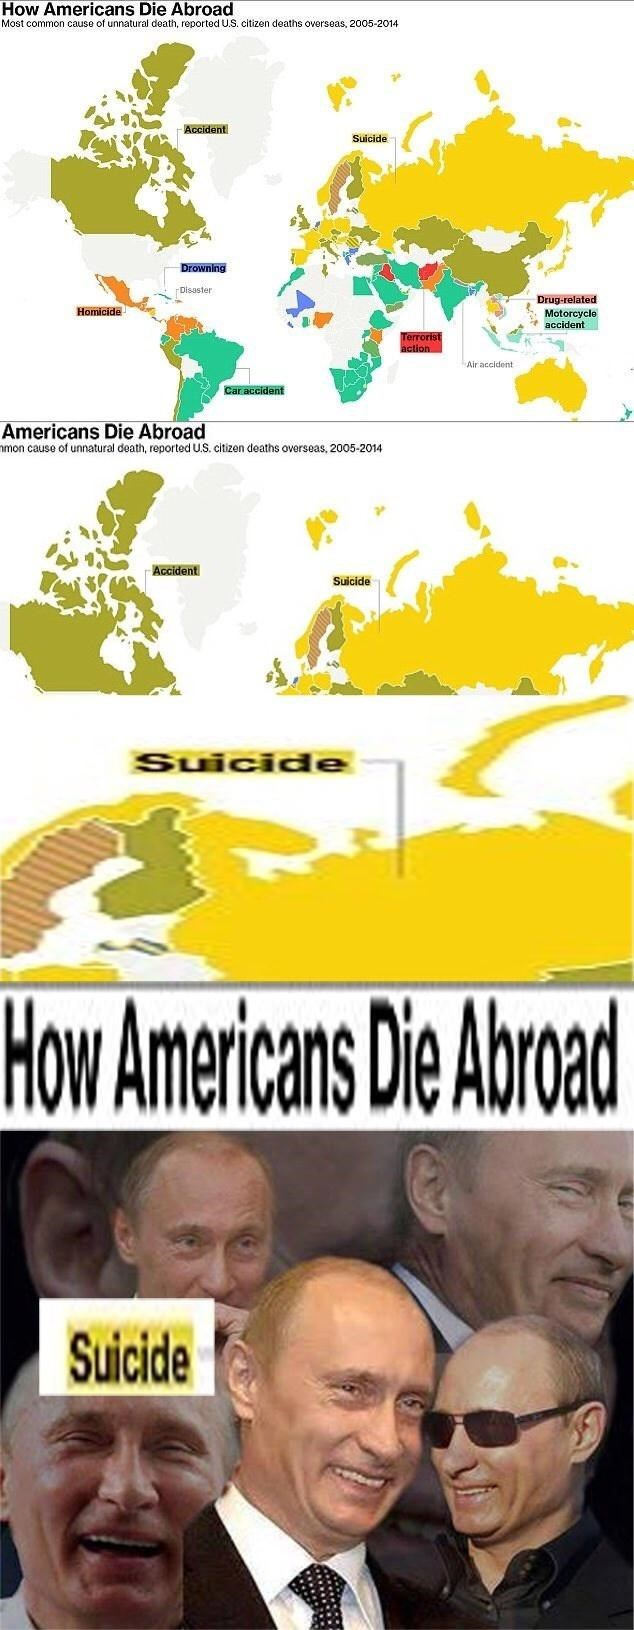 Text - How Americans Die Abroad Most common cause of unnatural death, reported U.S. citizen deaths overseas, 2005-2014 Accident Suicide Drowning Disaster Drug-related Motorcycle accident Homicide Terrorist action Air accident Car accident Americans Die Abroad nmon cause of unnatural death, reported U.S. citizen deaths overseas, 2005-2014 Accident Suicide Suicide How Americans Die Abroad Suicide